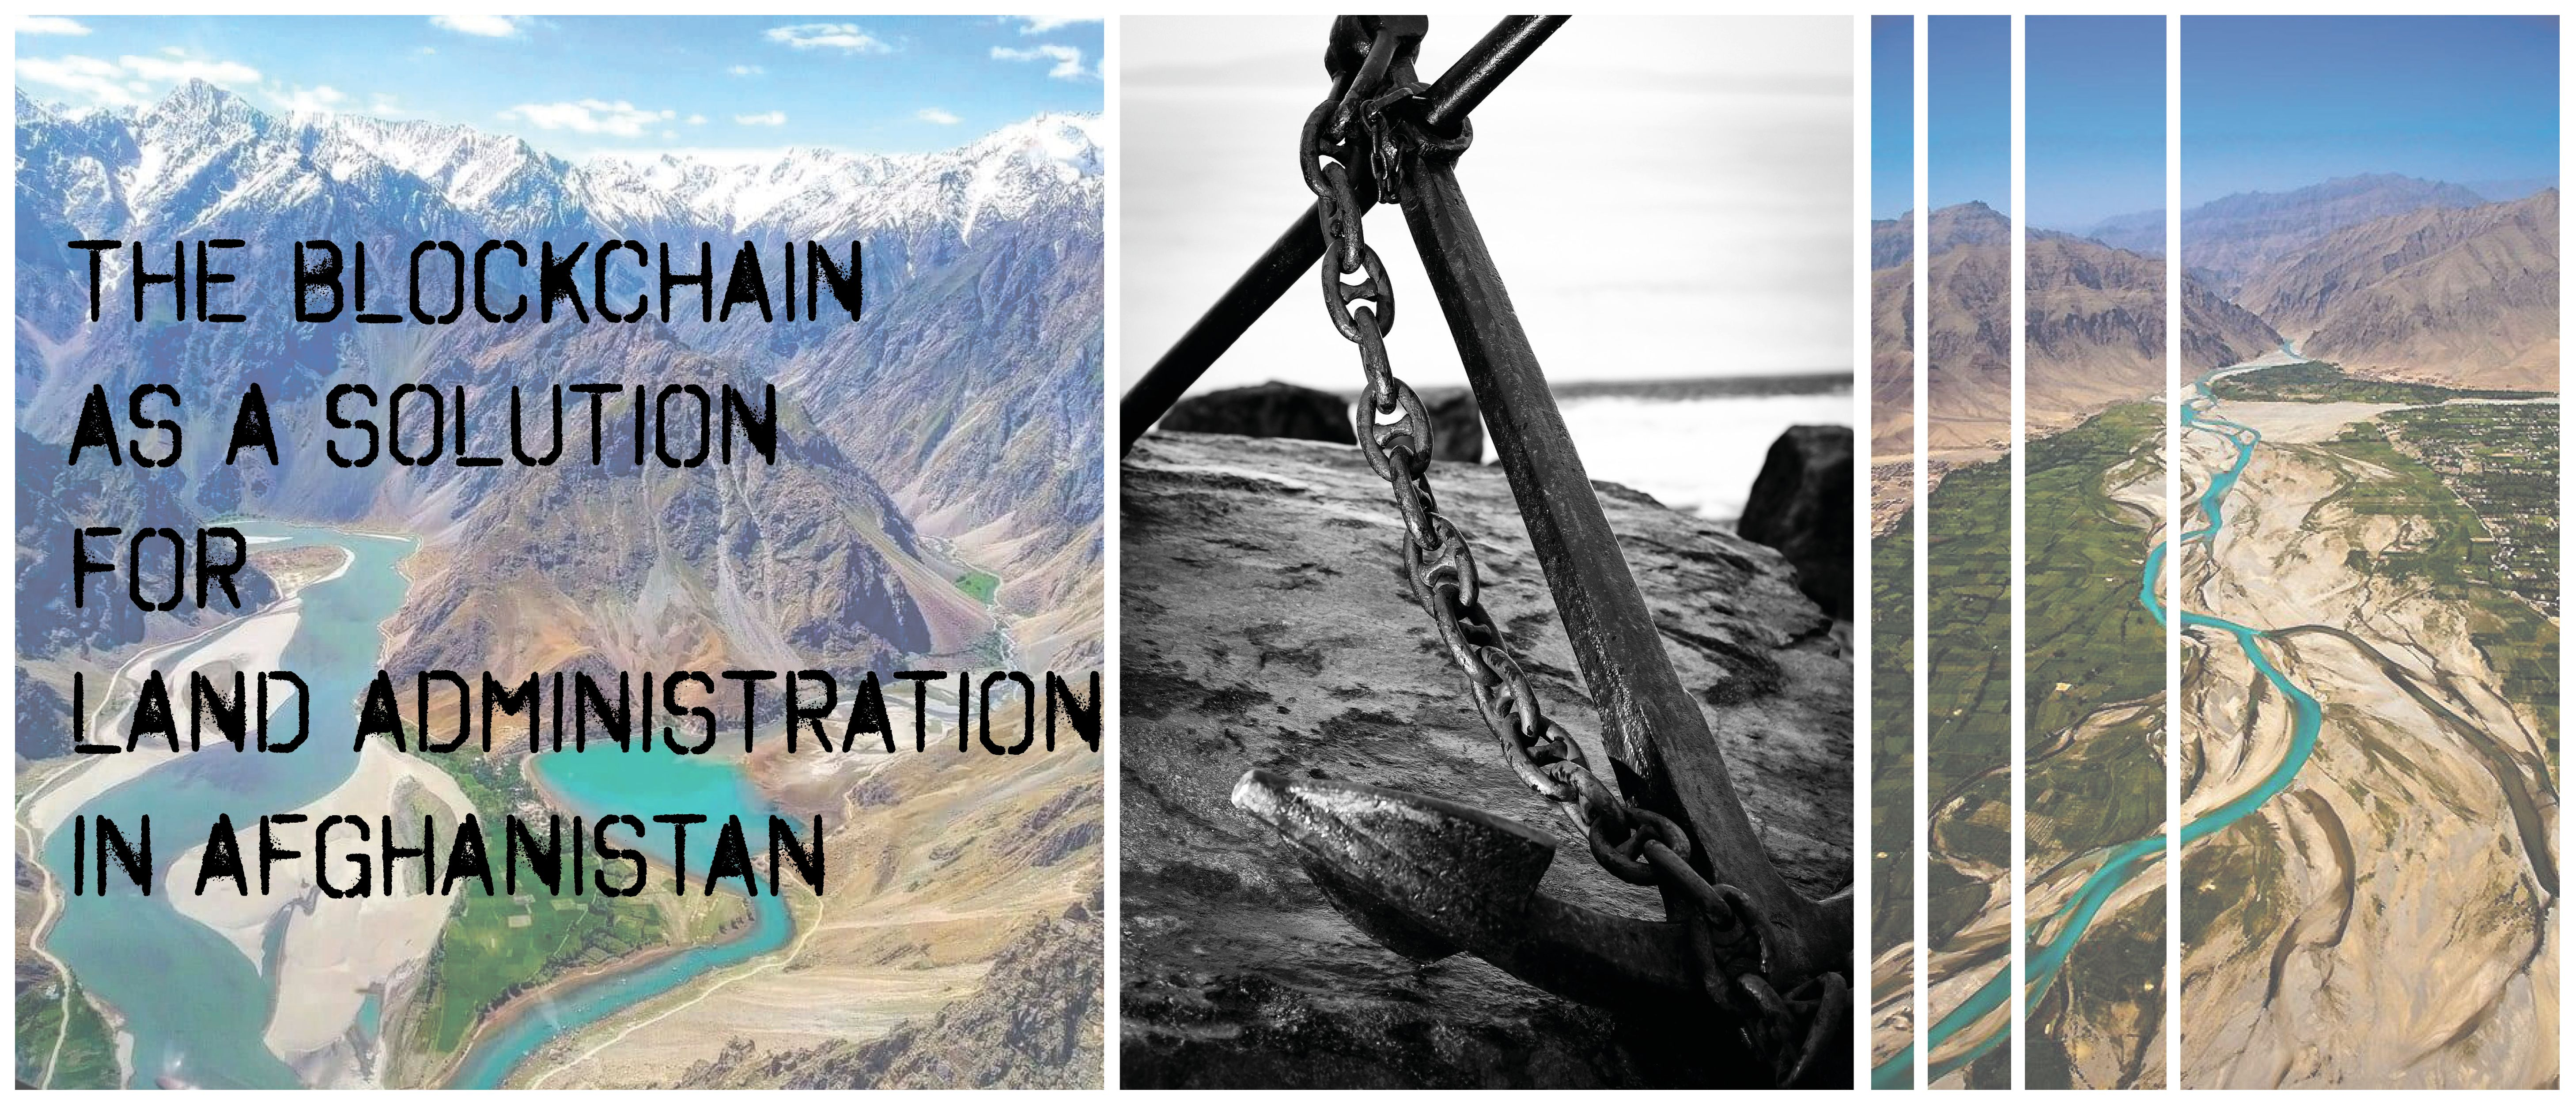 /land-administration-in-afghanistan-un-looks-towards-blockchain-8p2y3z9v feature image